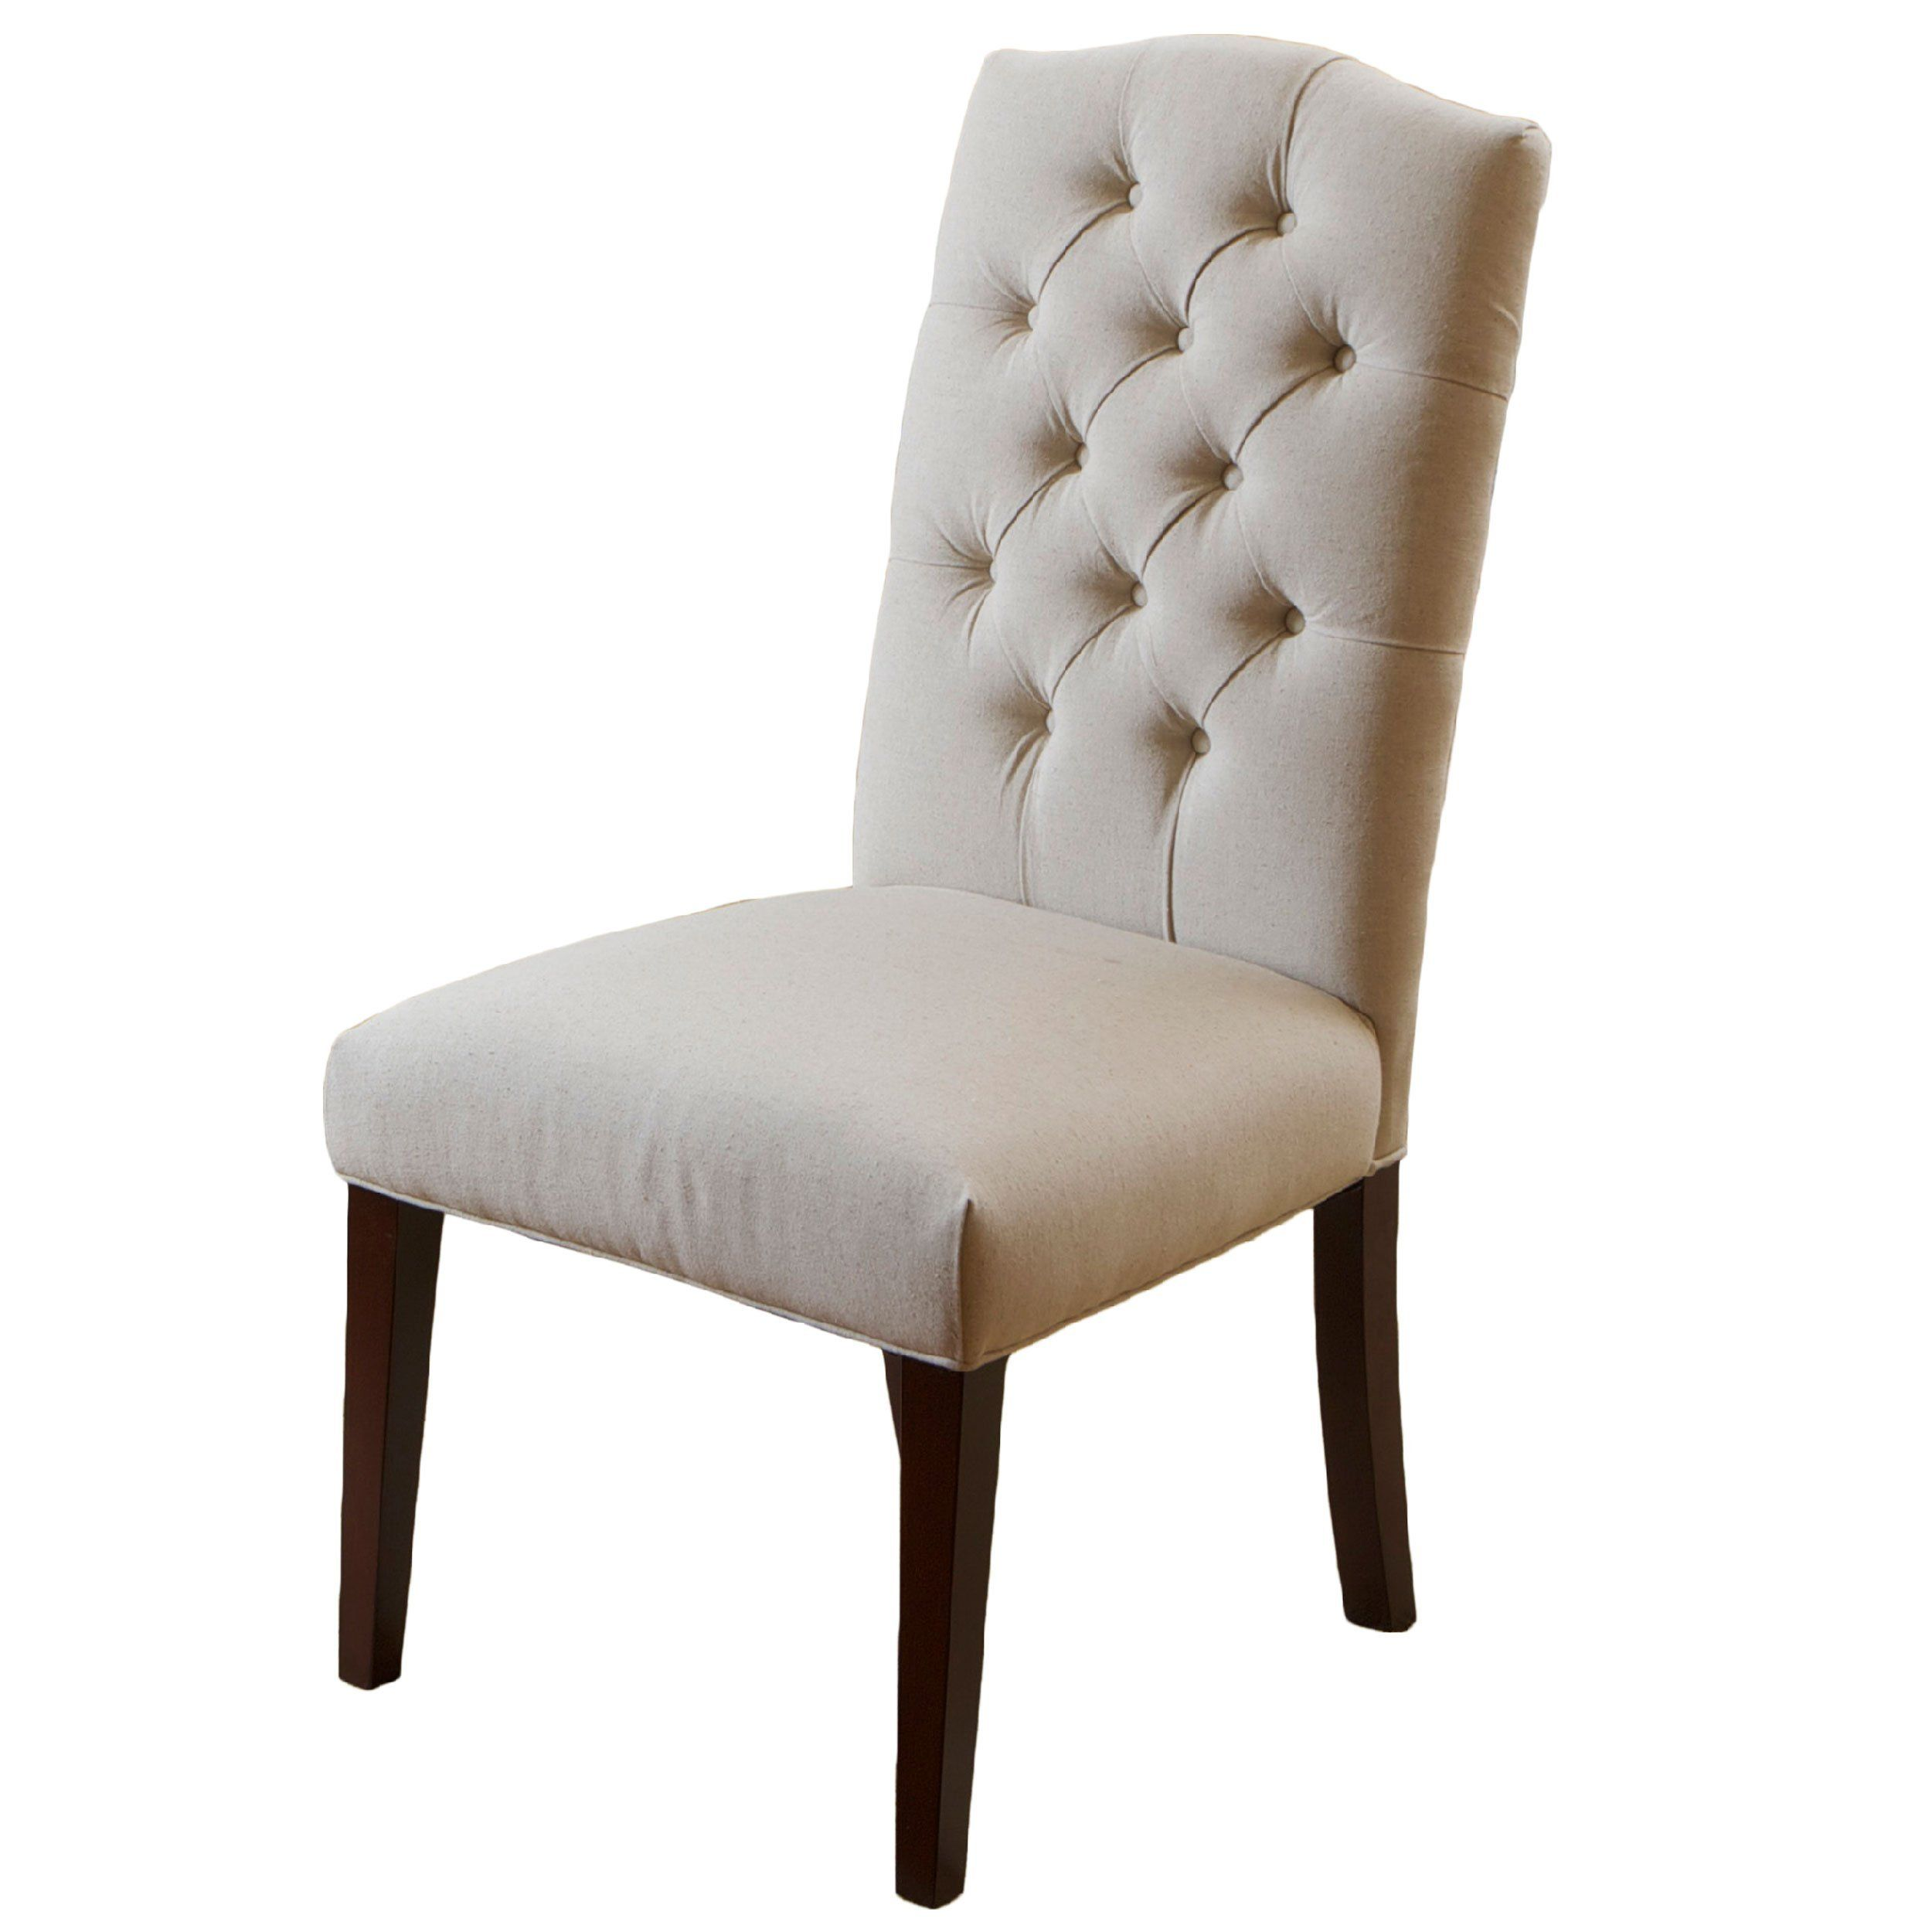 Clark Elegant Upholstered Dining Chairs W/ Button Tufted Backrest (Set Of  2) 192